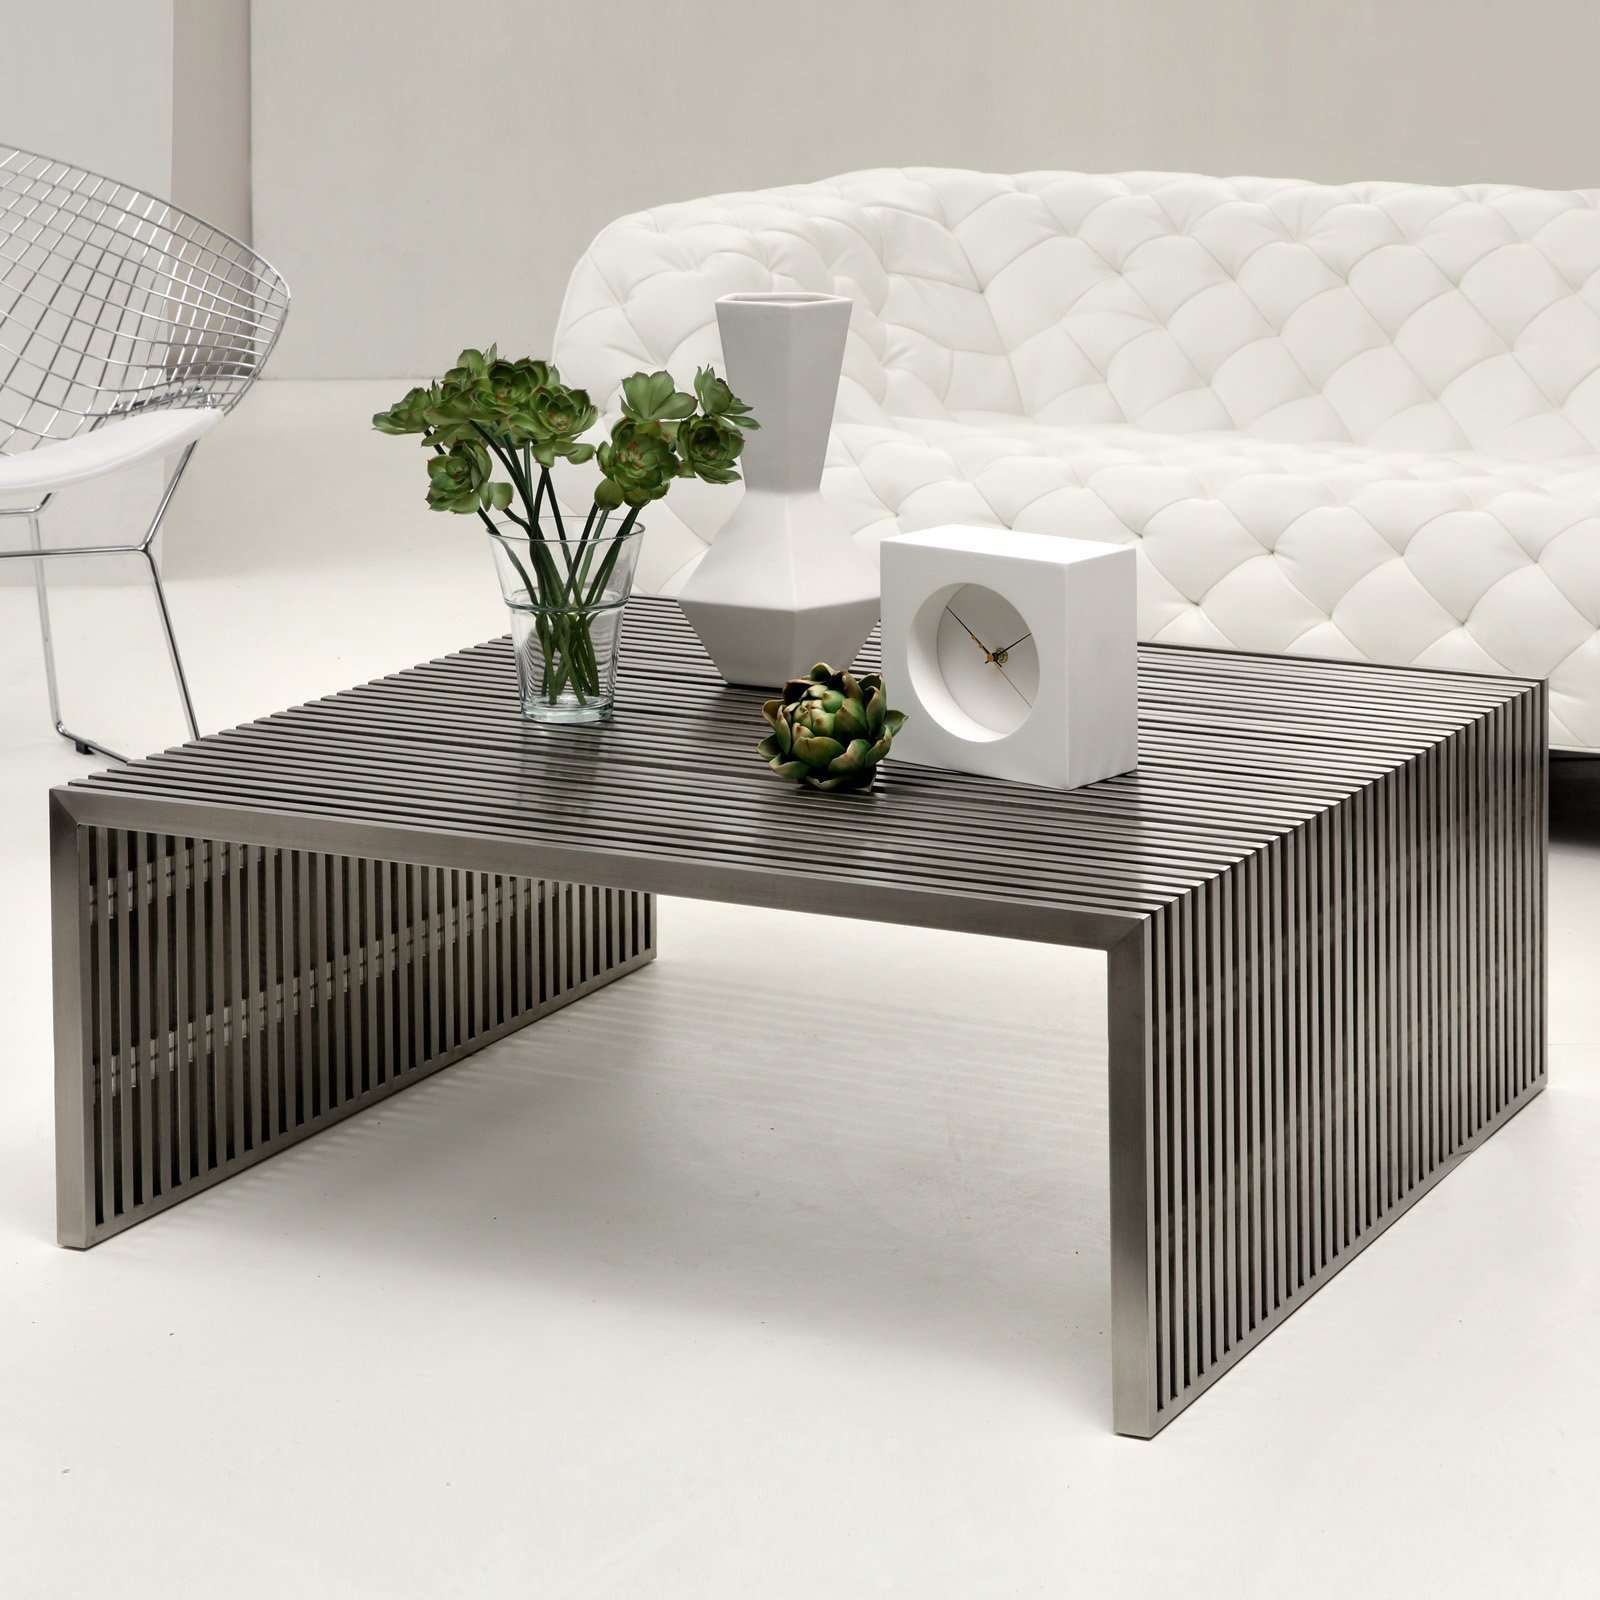 2017 Modern Coffee Tables With Storage Throughout Coffee Table : Modern Metal Coffee Table (View 2 of 20)